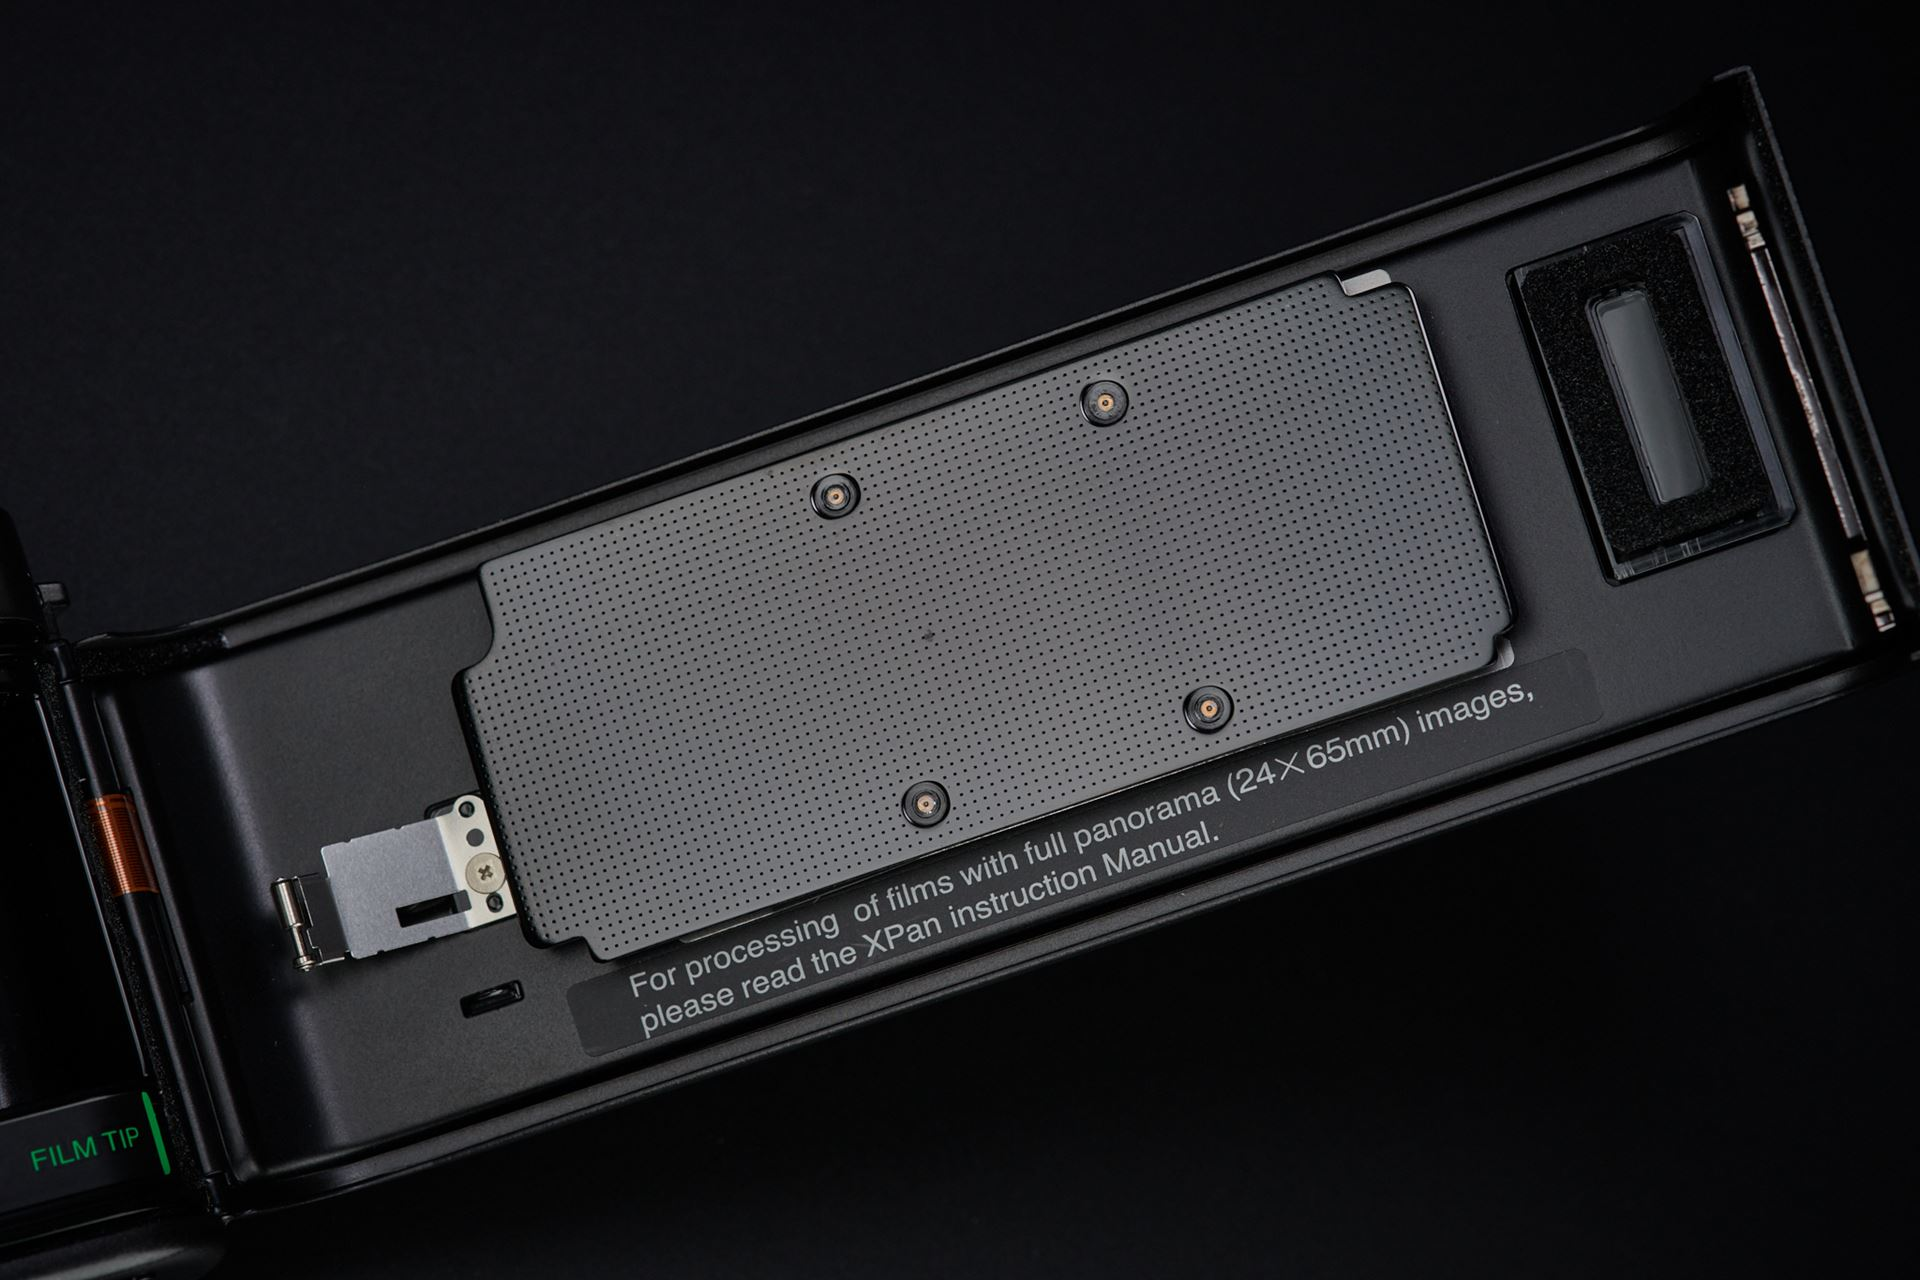 Picture of hasselblad xpan II w/ hasselblad 45mm f/4